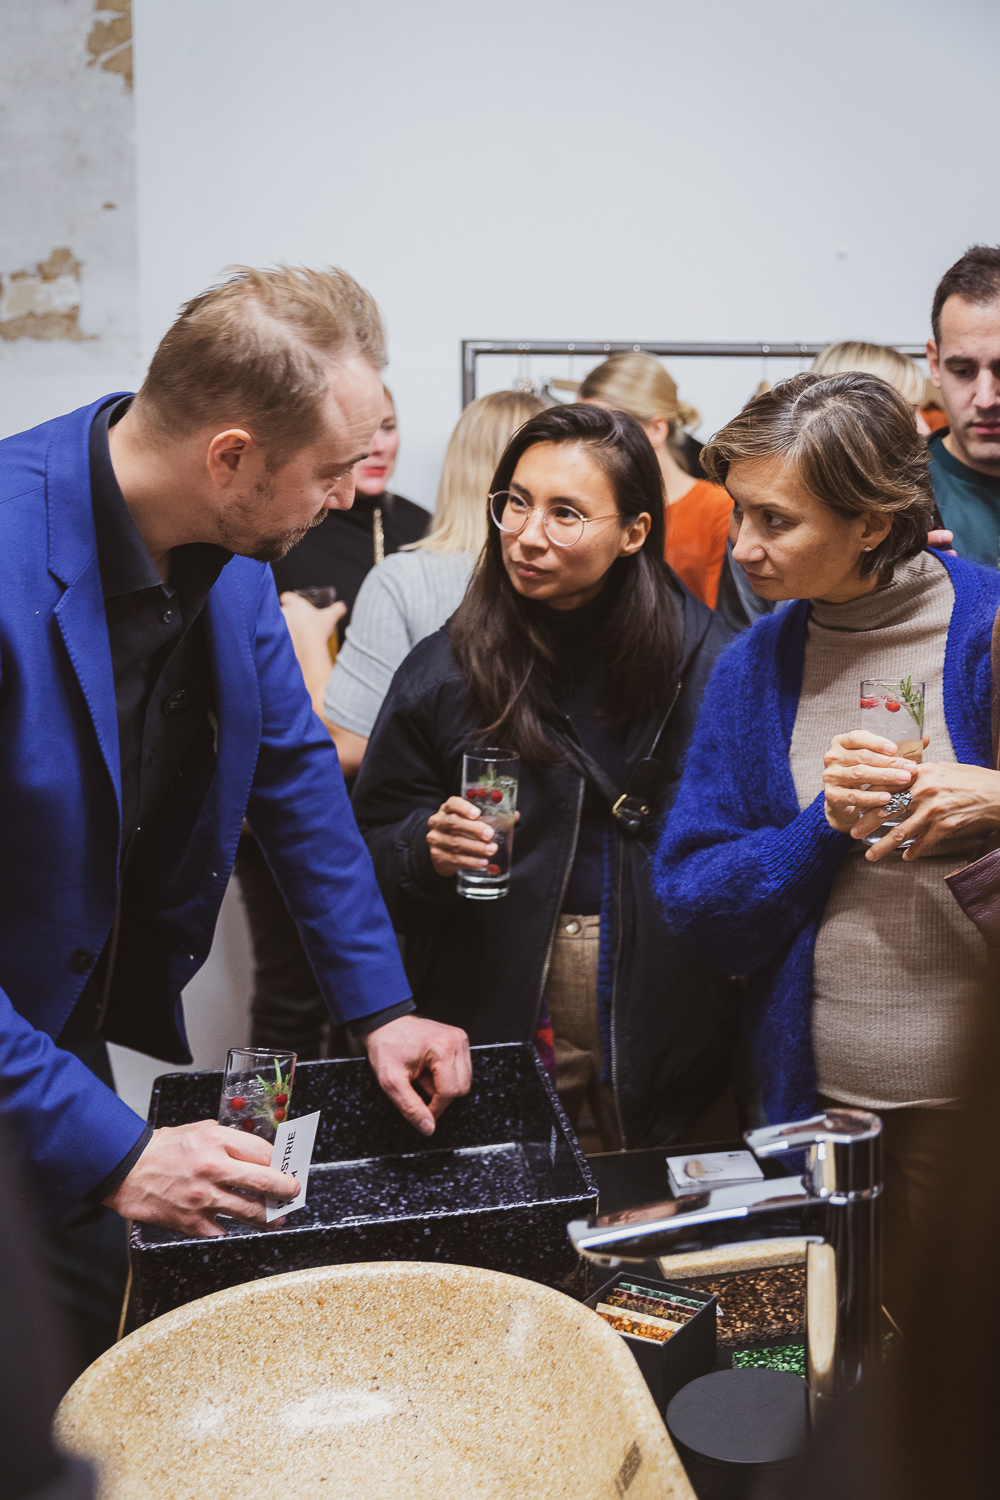 2018-VALISE-Glint-LifestyleFinland-EveningVernissage-webres-7805.jpg